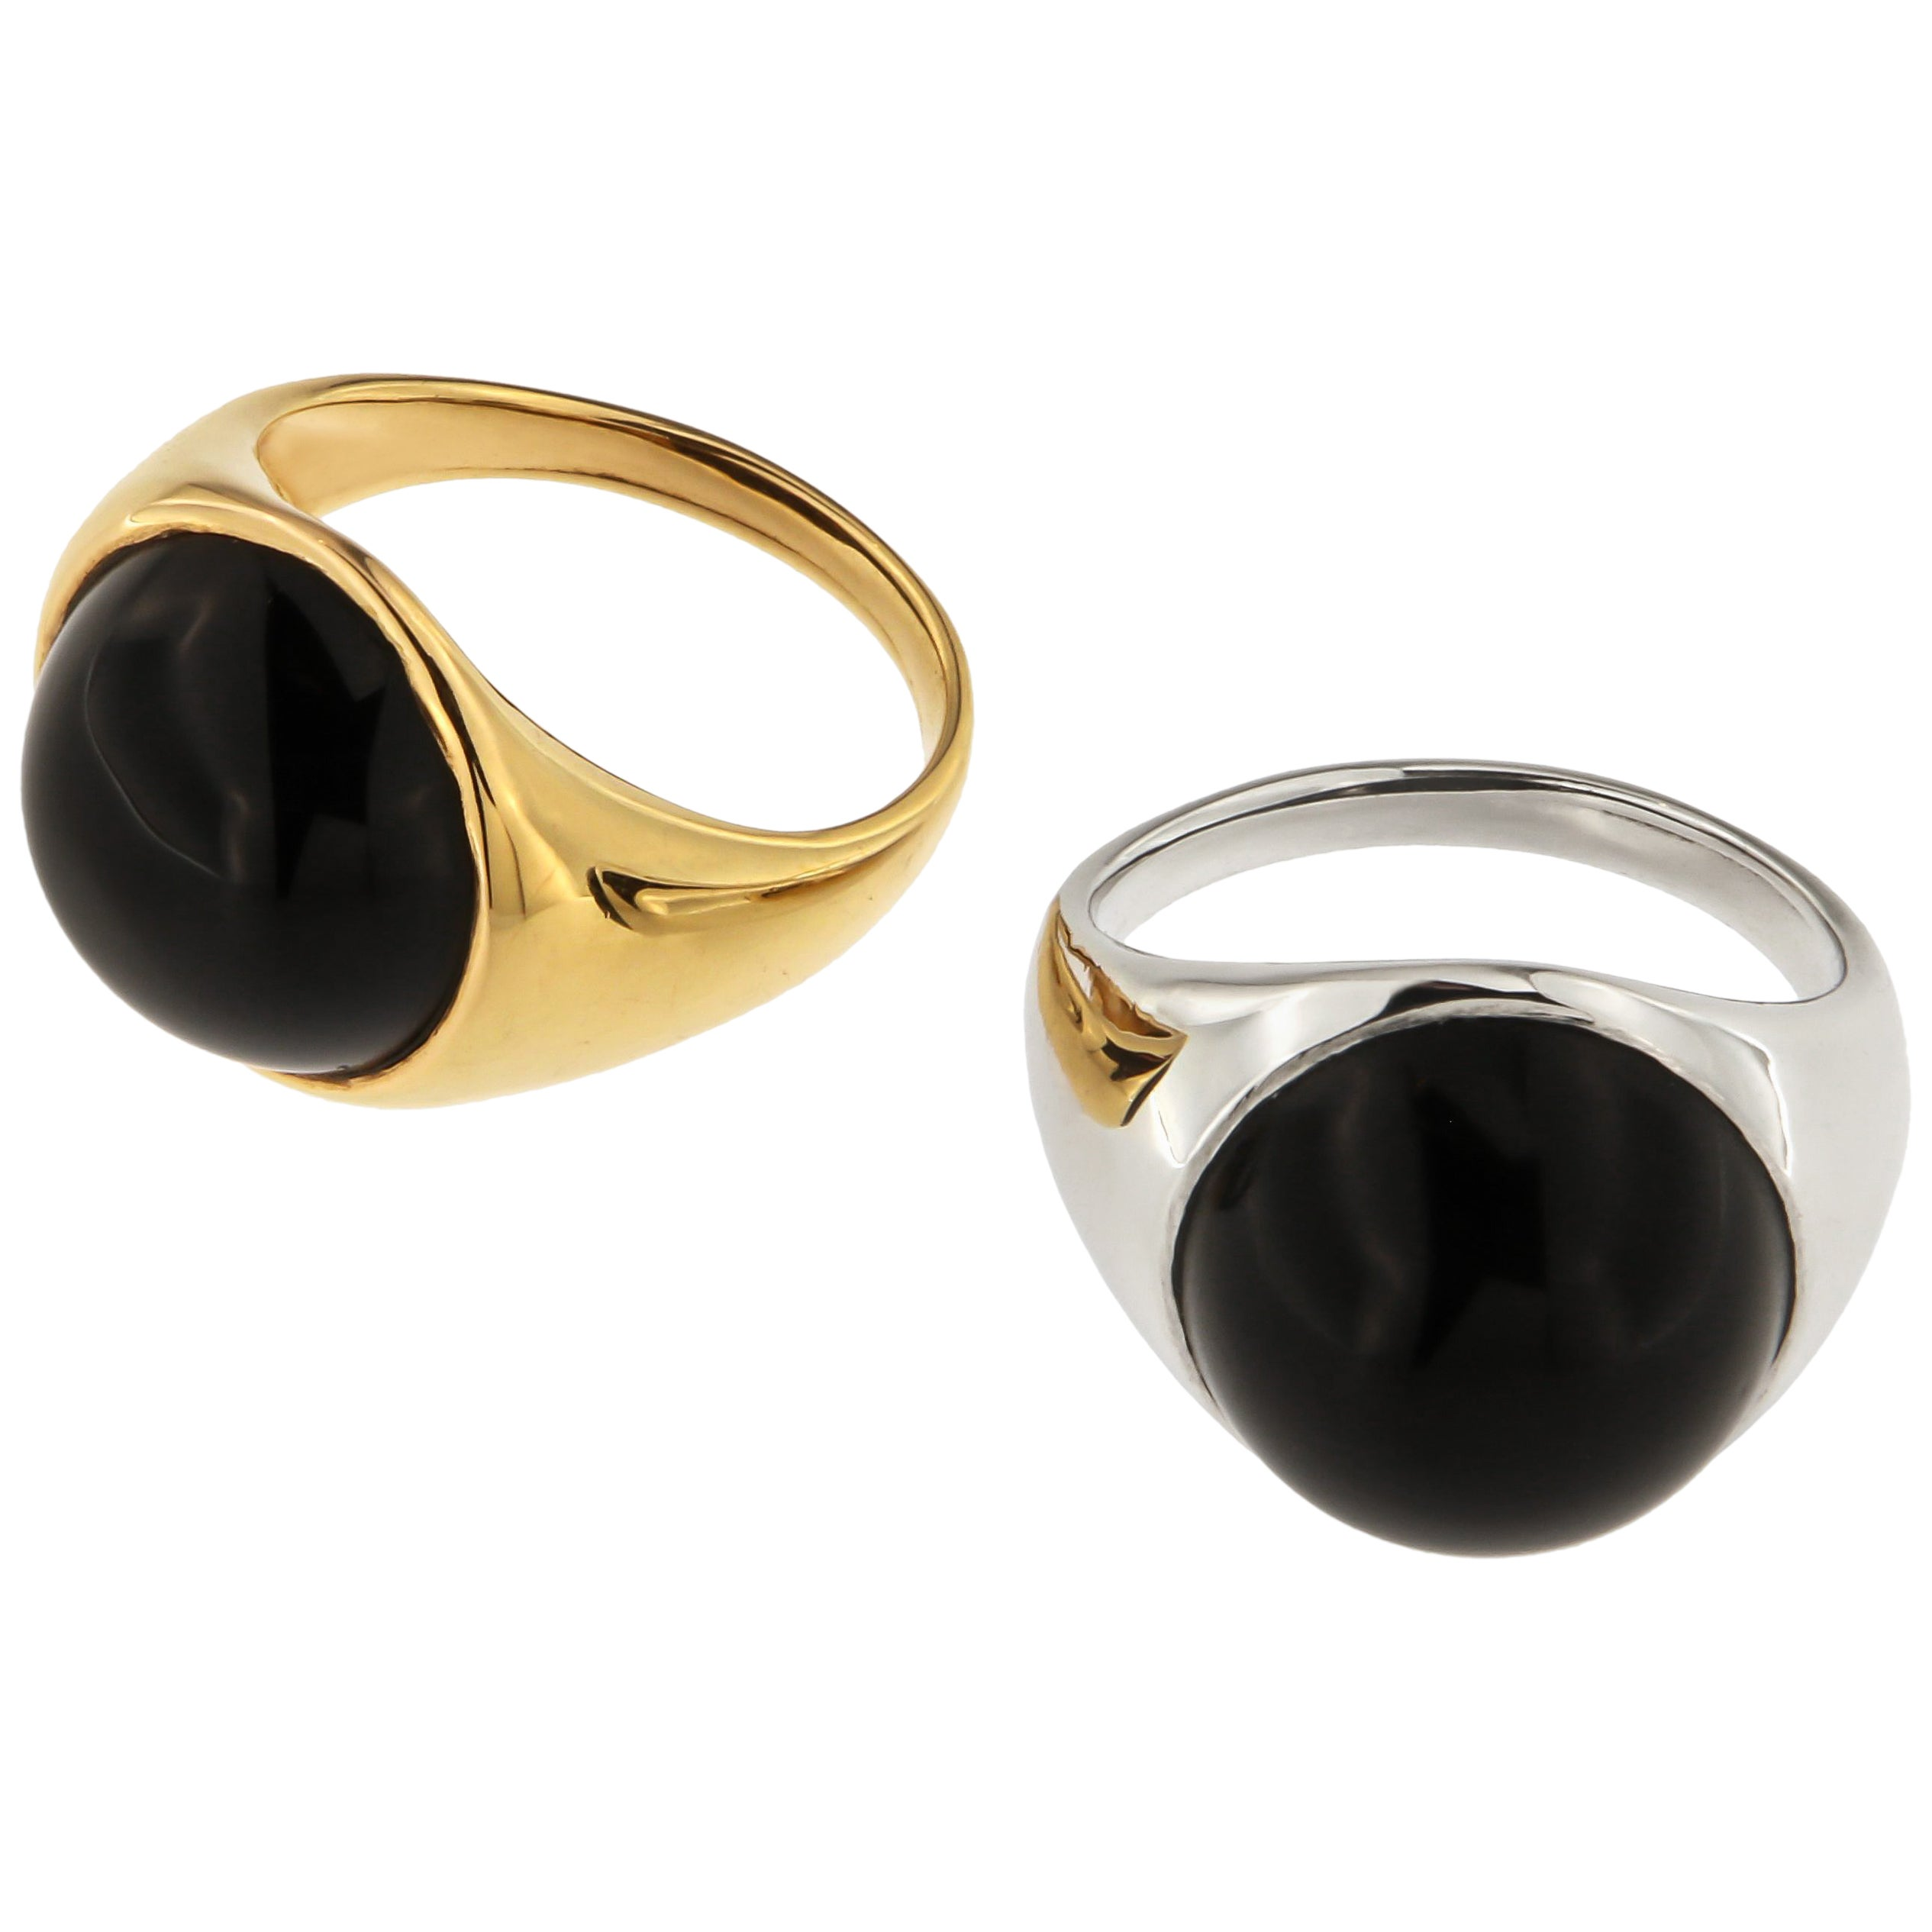 Onyx 18 Karat White Rose Gold Dome Ring Handcrafted in Italy